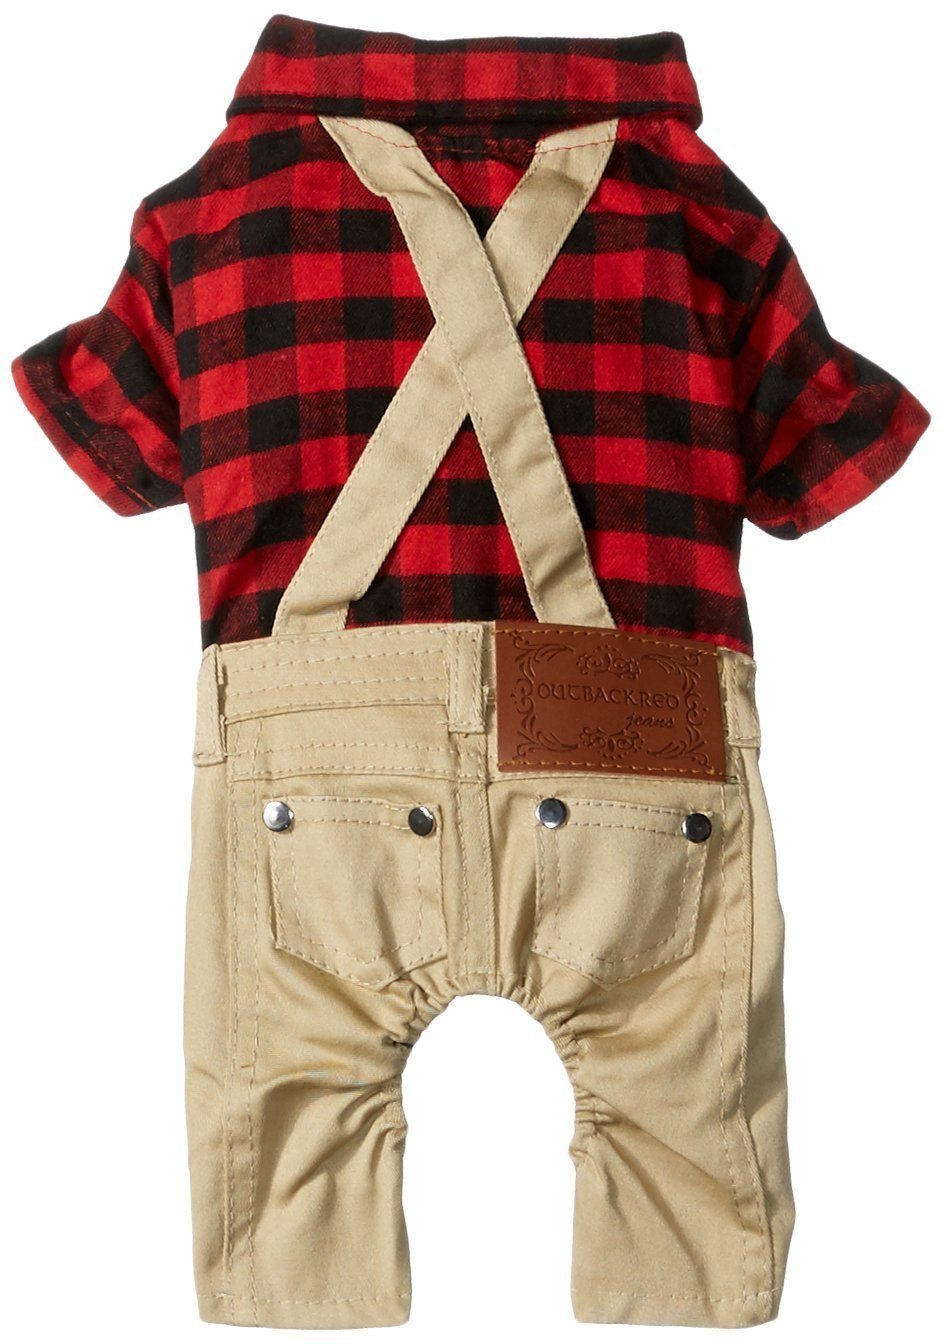 SMALLLEE_LUCKY_STORE Pet Clothes for Small Dog Cat Red Plaid Shirts Sweater with Khaki Overalls Pants Jumpsuit Outfits L XY000231-L